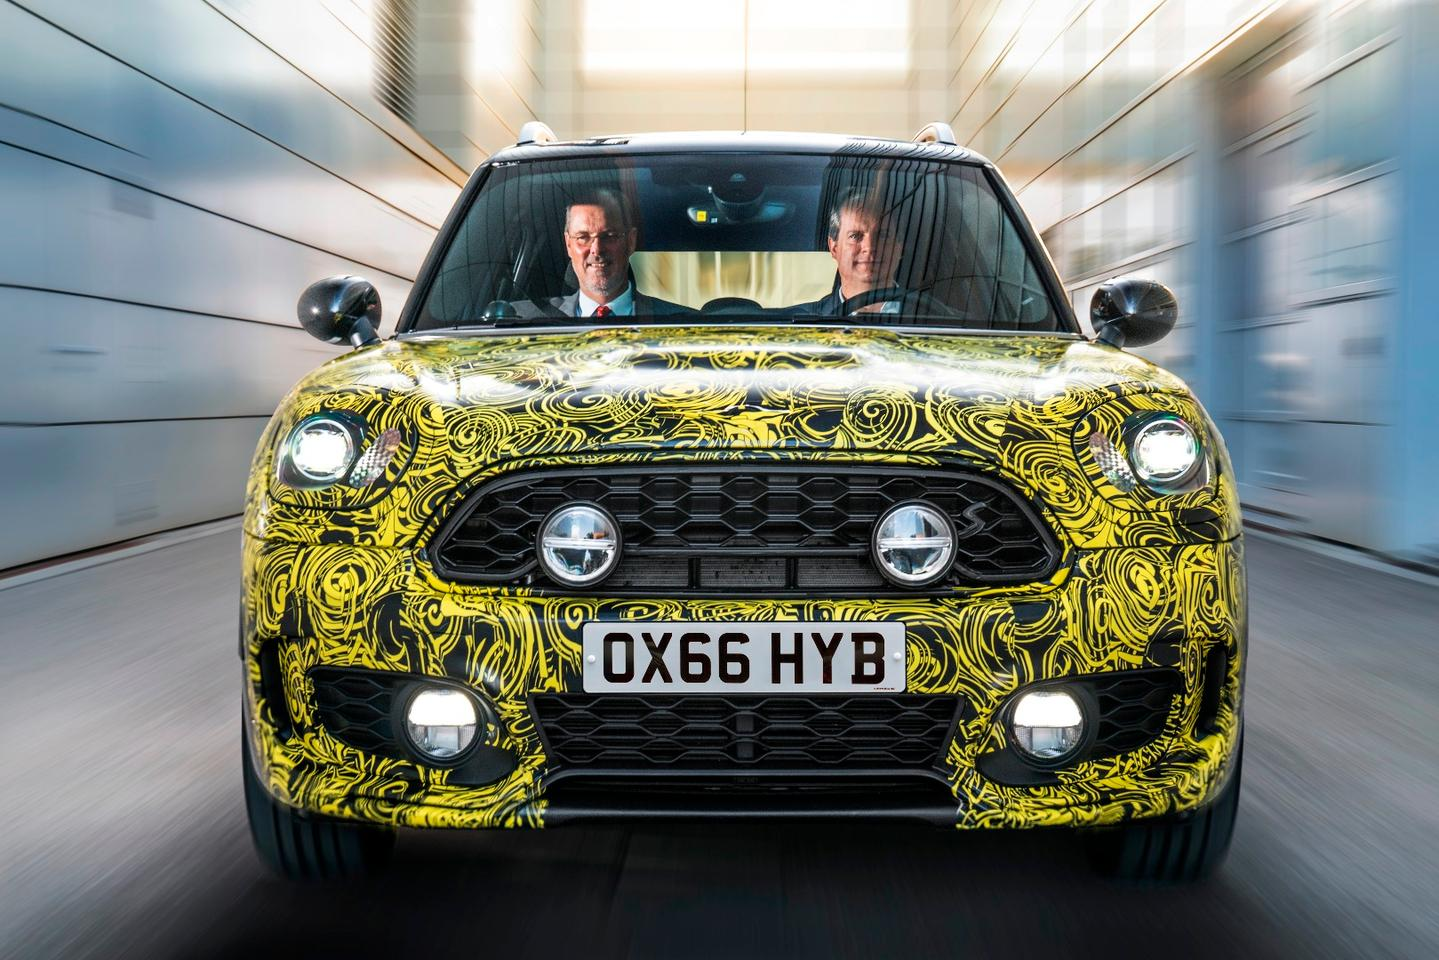 The Mini Hybrid is reported to be launchingsoon, but no further details are available at the moment